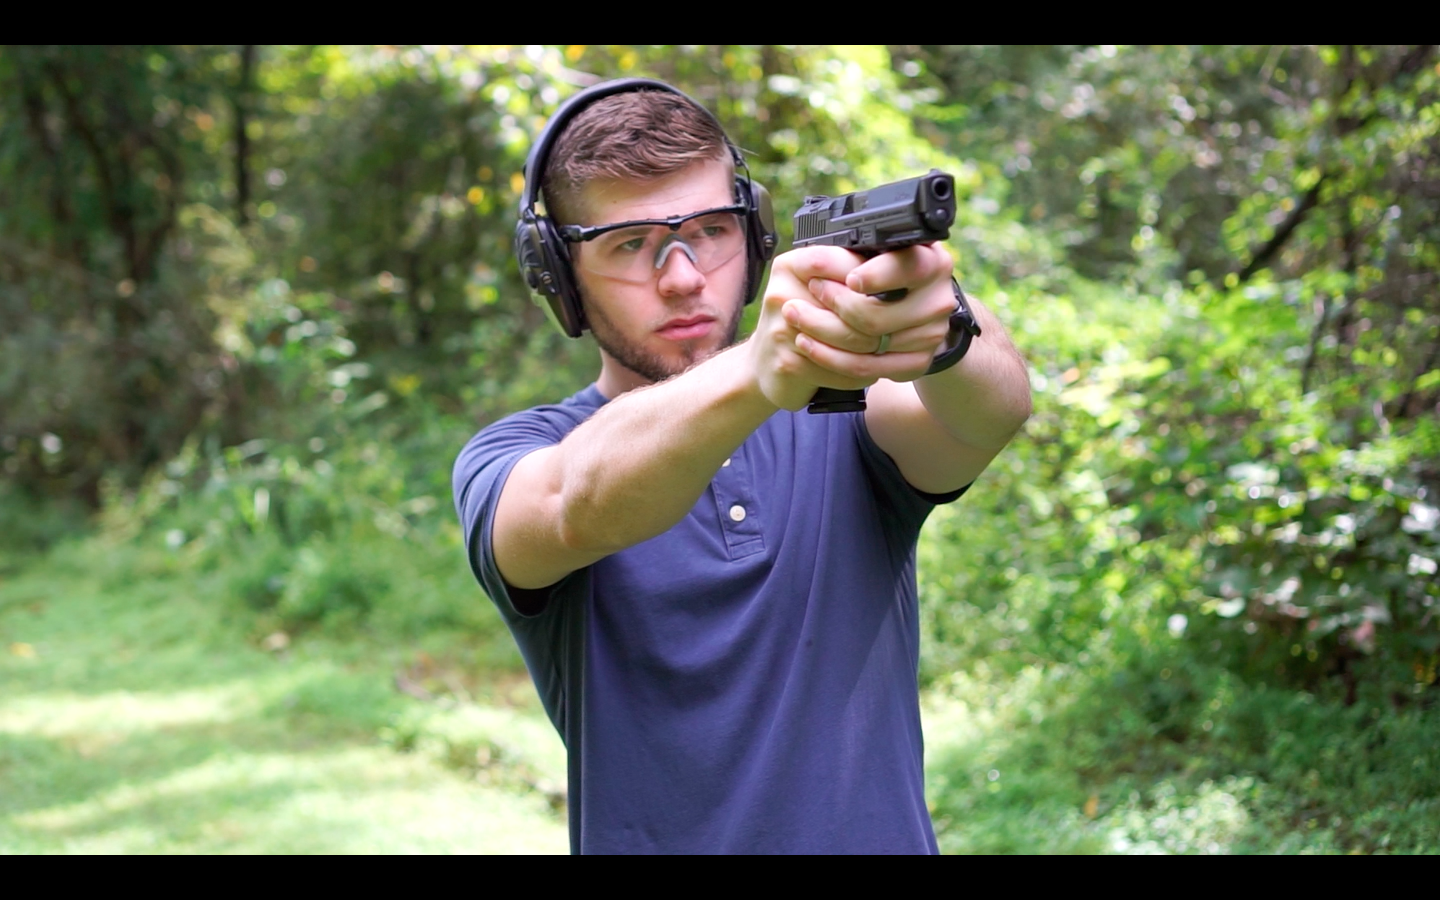 The author Firing a Canik TP9 at the shooting range as part of his review